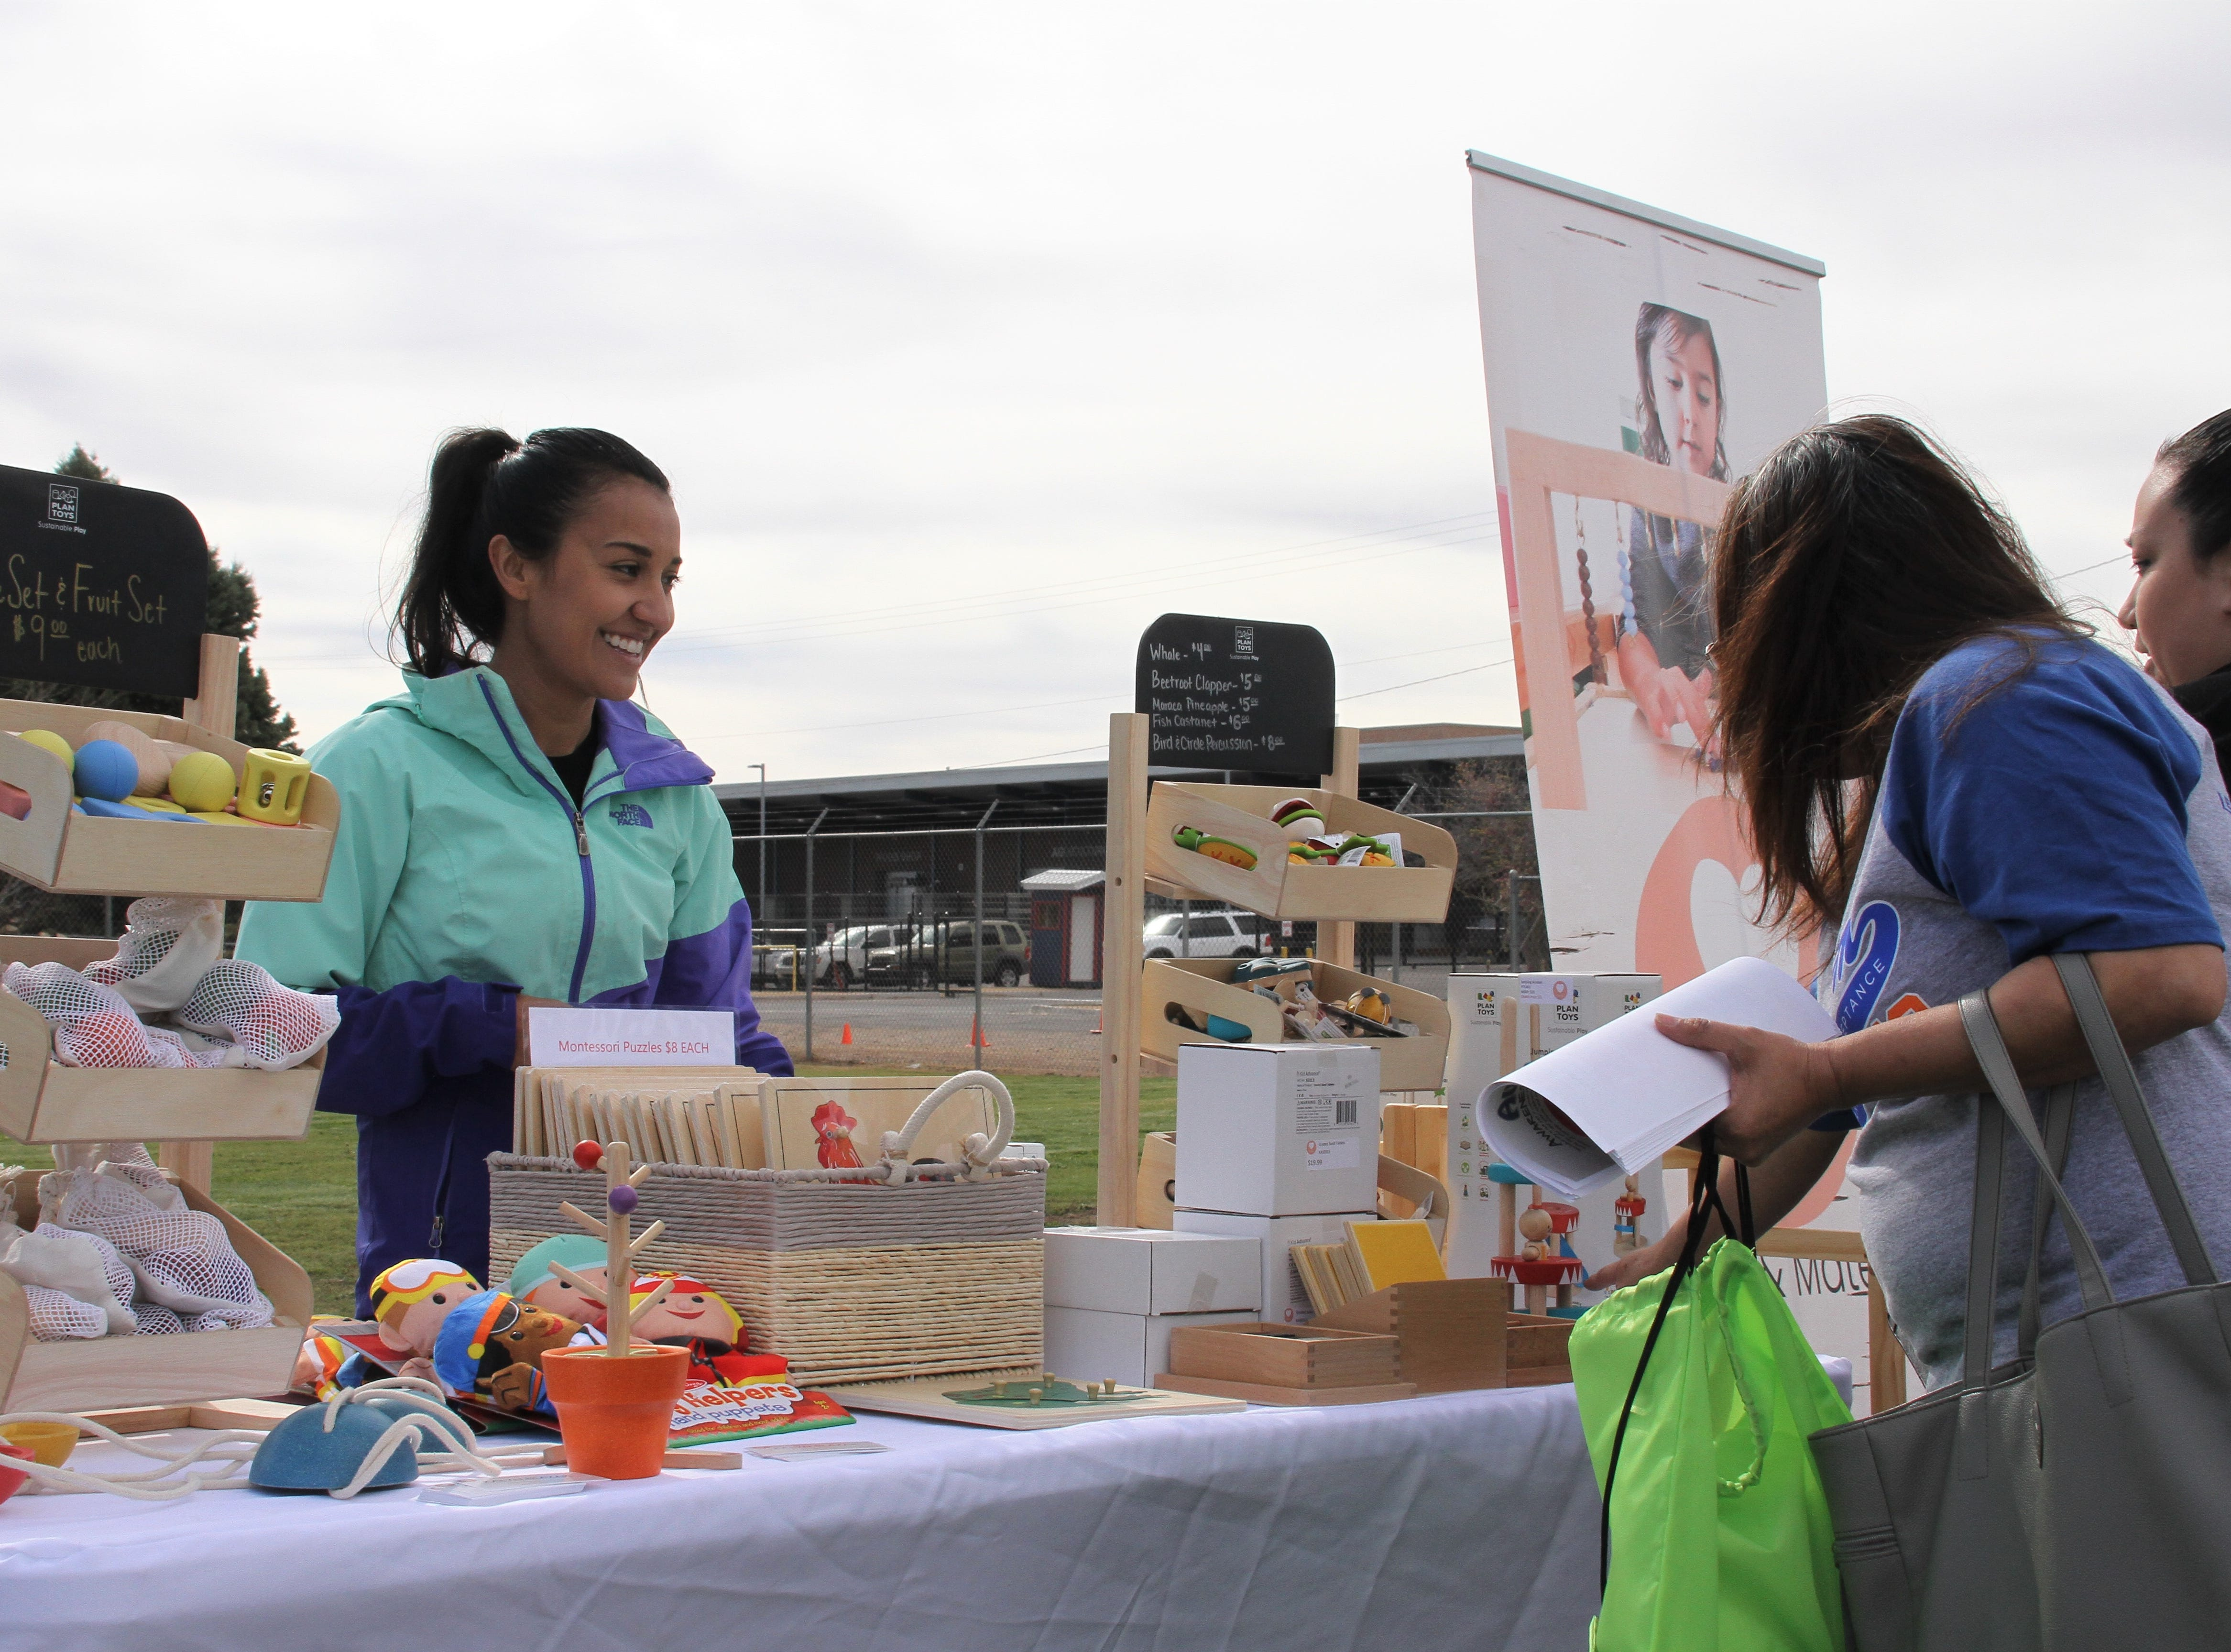 Kalyn Blazak, hosting a booth for Play Sharity, a new and rising children's museum in Deming.